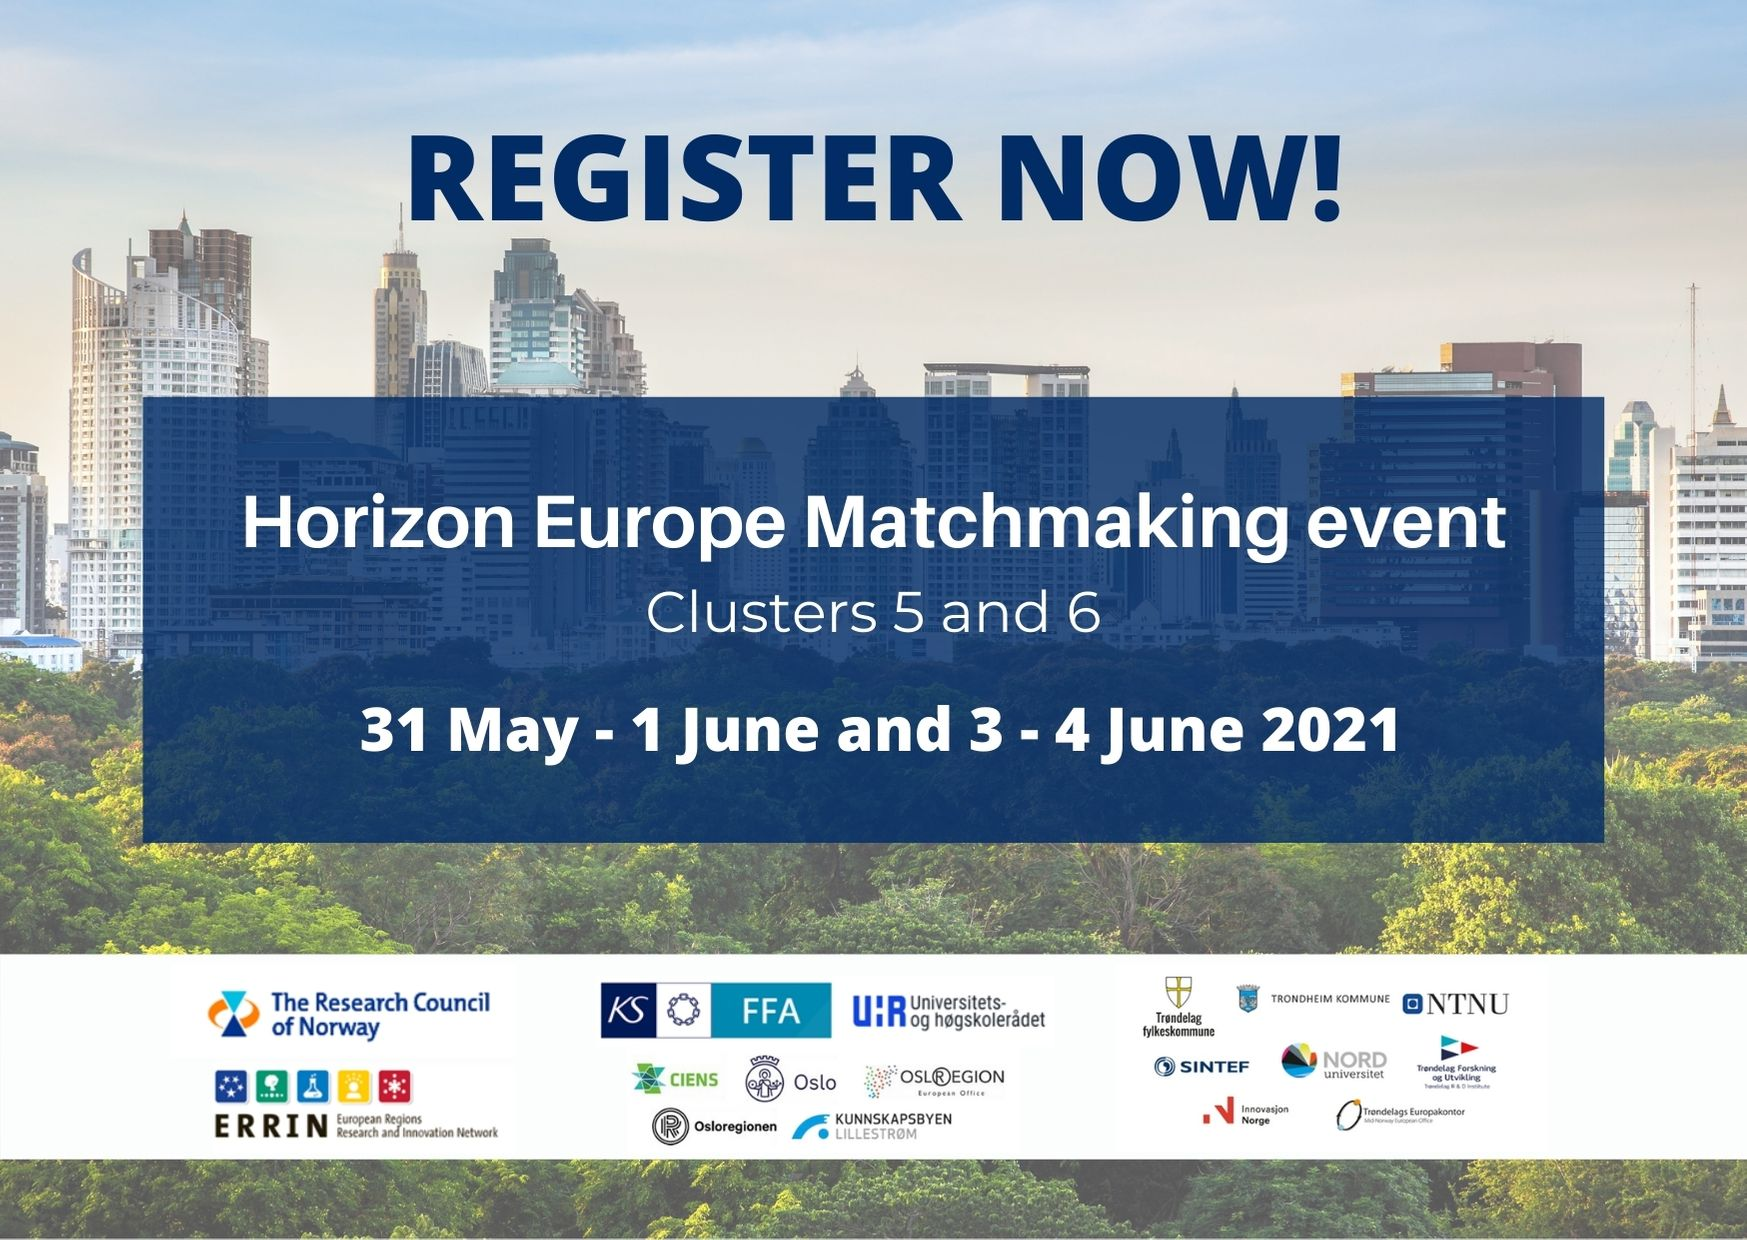 Horizon Europe Matchmaking event: Clusters 5 and 6 (part I)